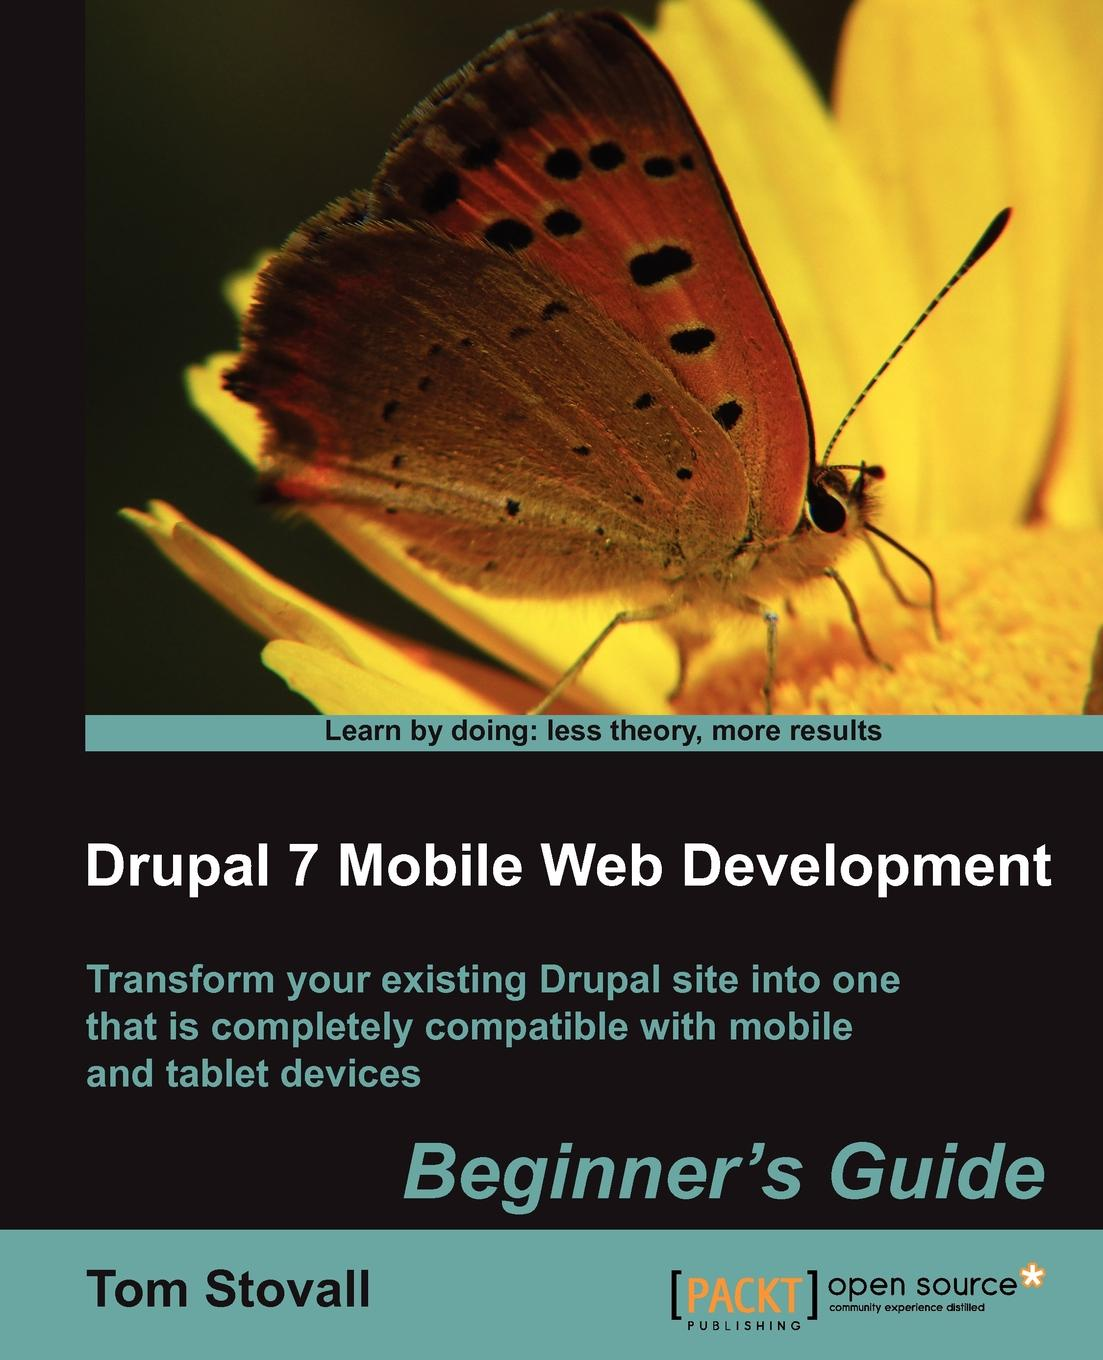 T. Stovall, Tom Stovall Drupal 7 Mobile Web Development Beginner's Guide crystal stovall gifts of love